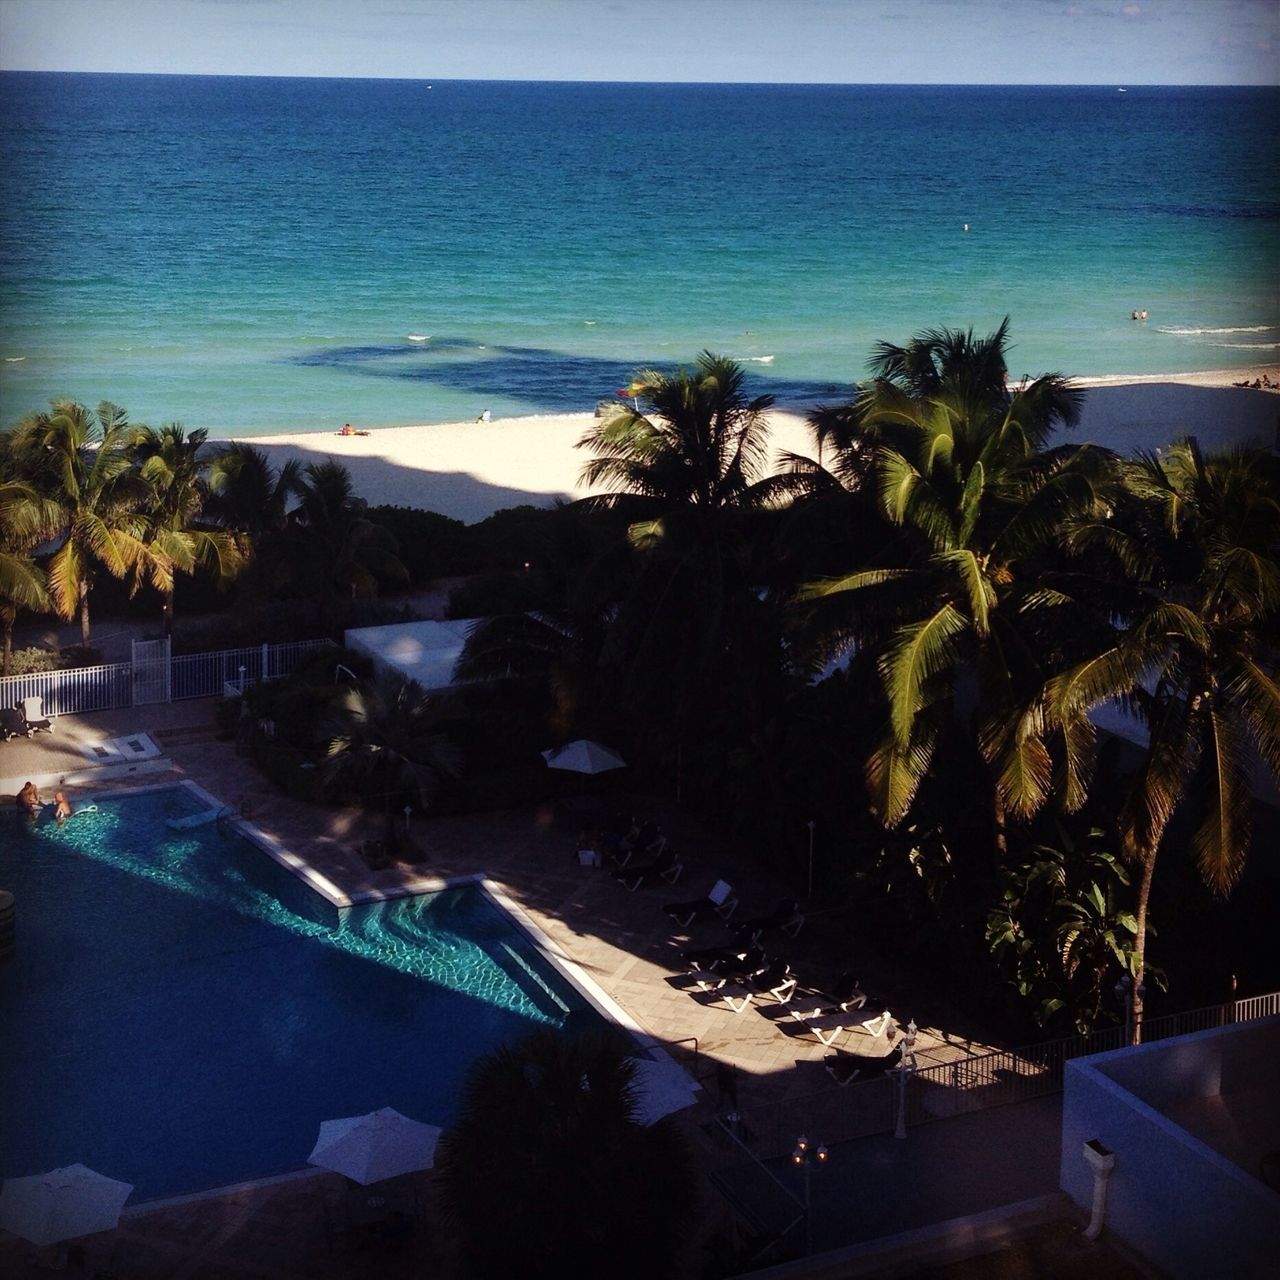 Miami Beach Shadow Play Cabincrew Travel Photography Miami Beach Beach Hotelroomview Seascape